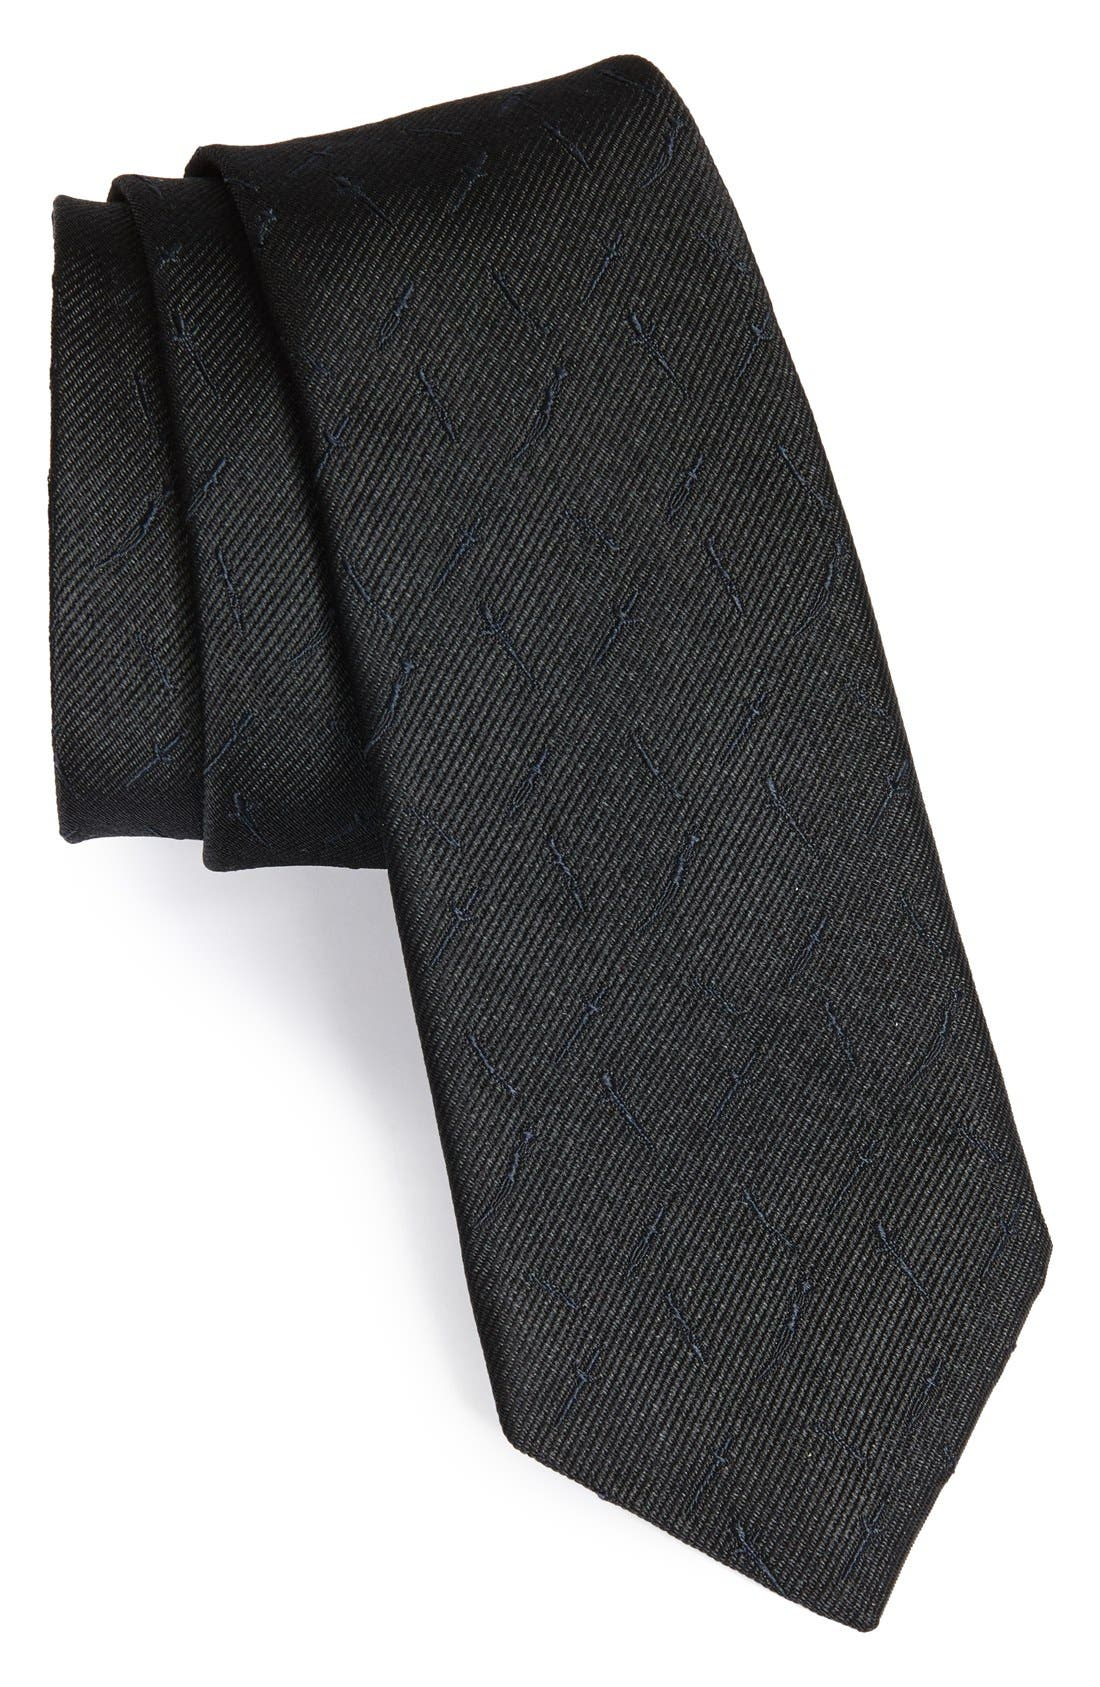 Main Image - rag & bone 'All Over Dagger' Woven Silk Tie